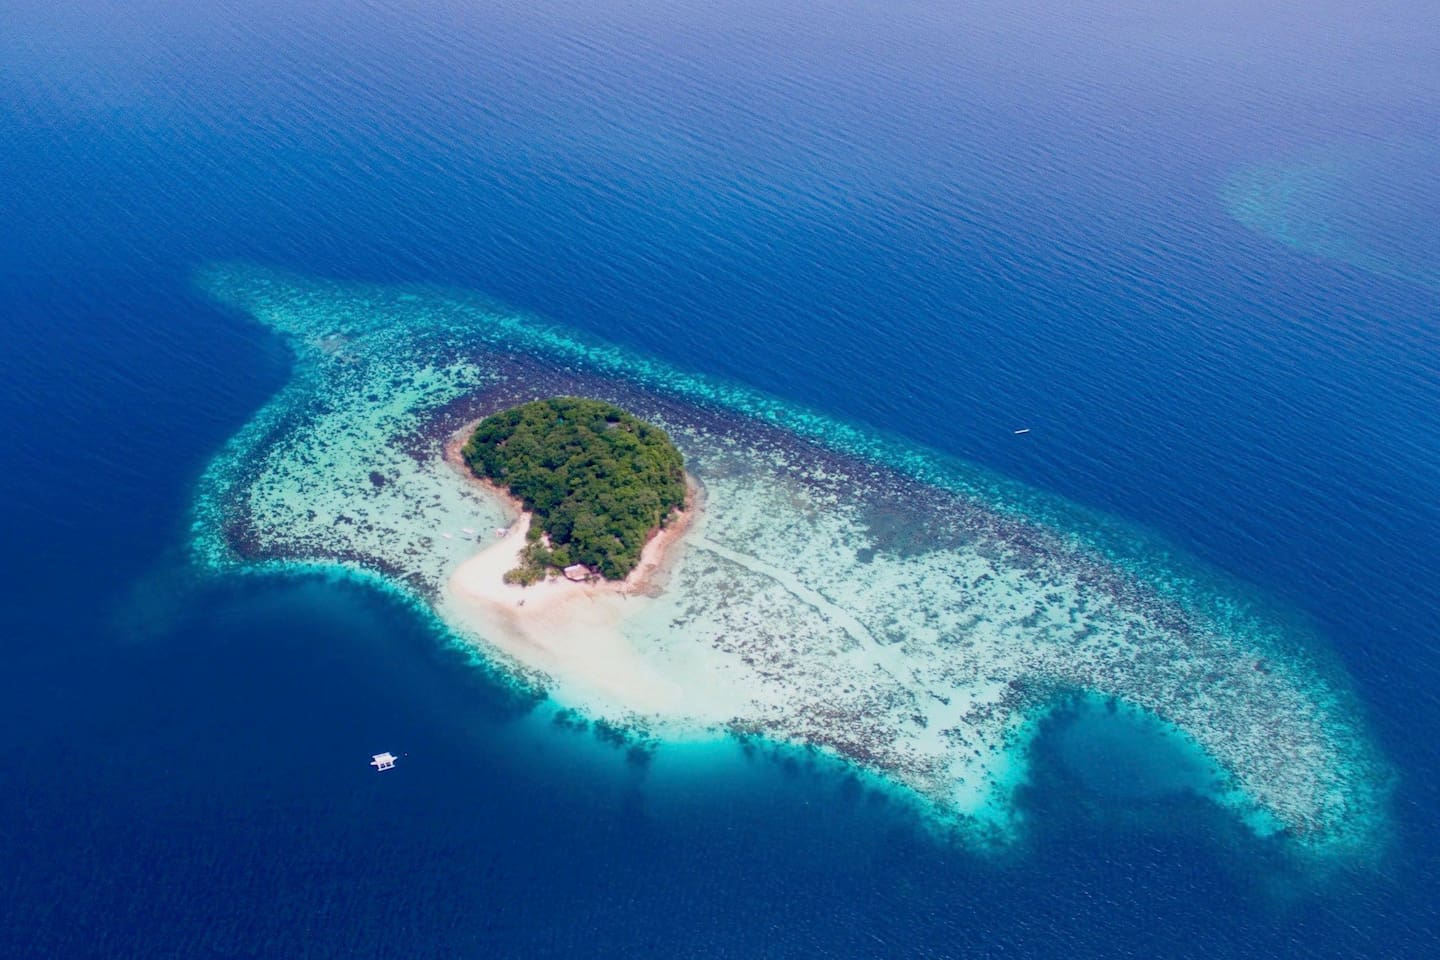 Bamboo Private Island from the sky